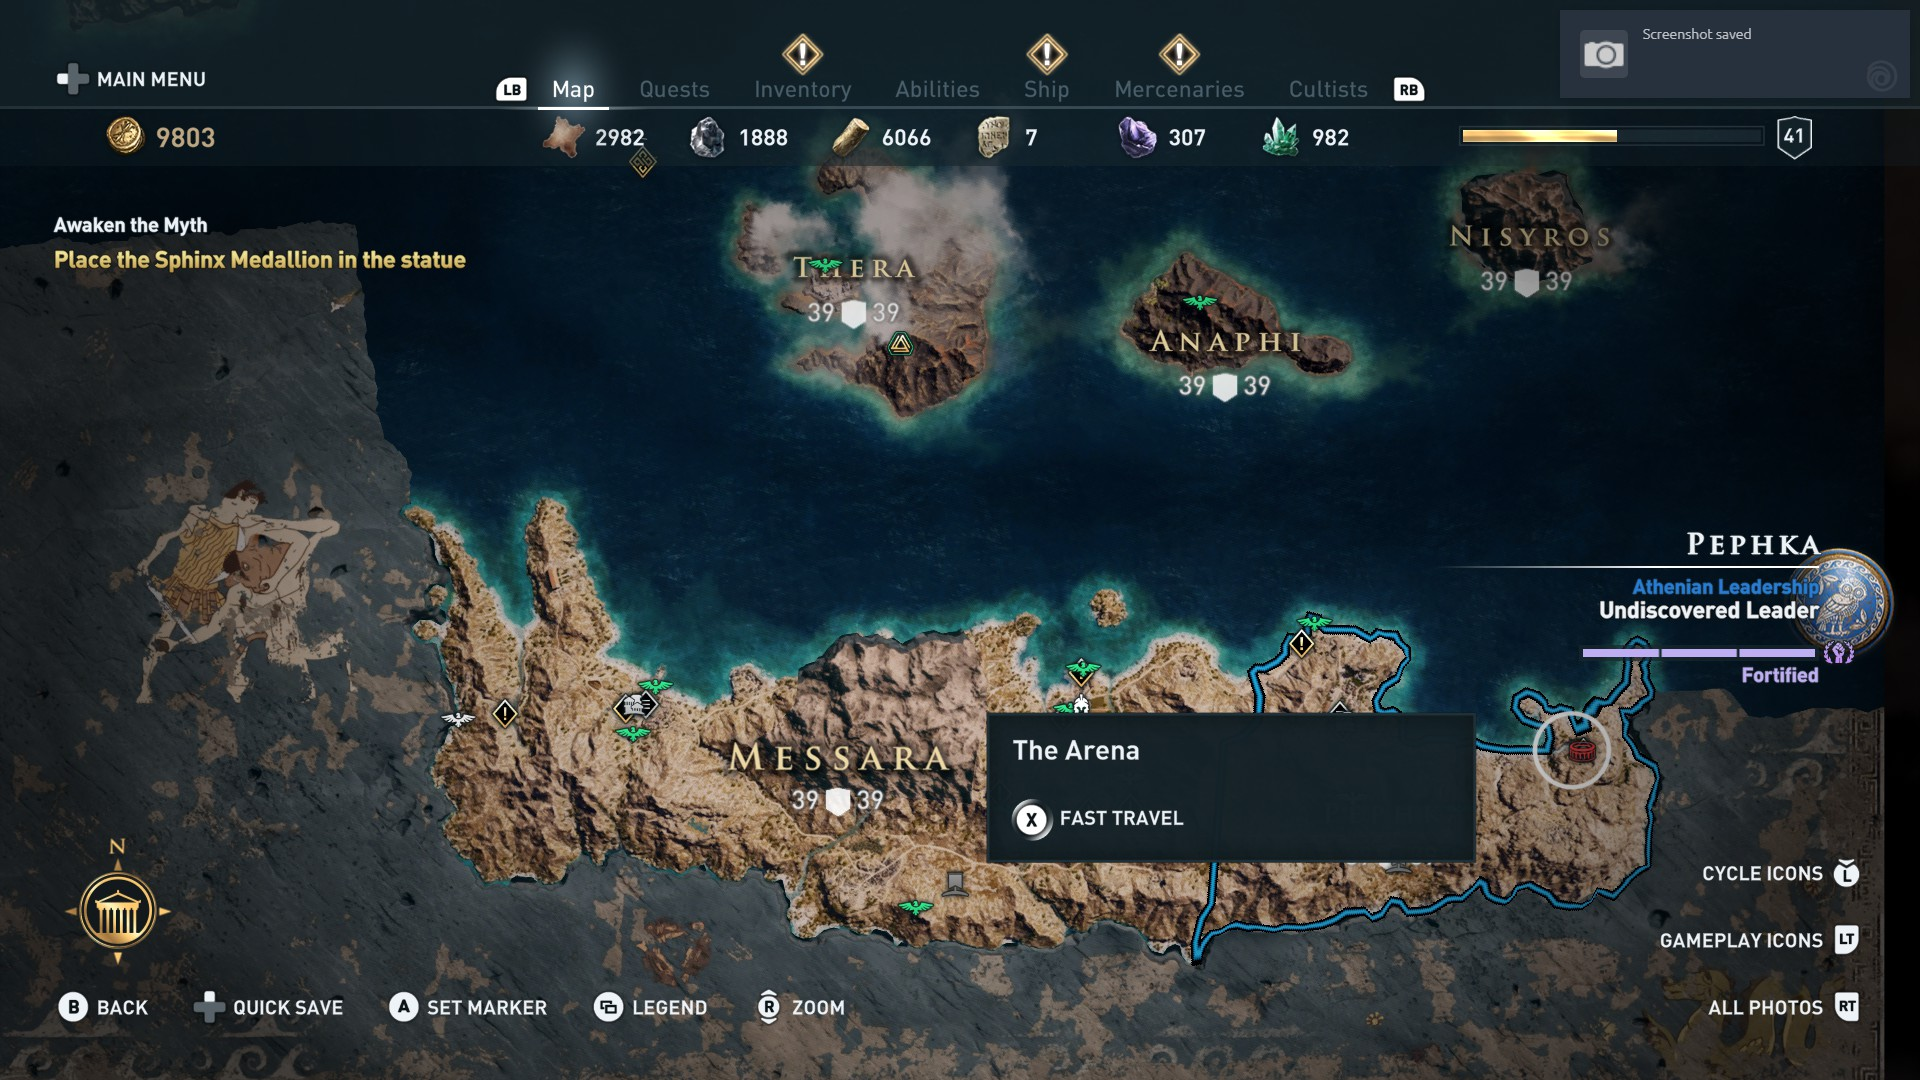 Assassin S Creed Odyssey Where To Find The Arena Usgamer